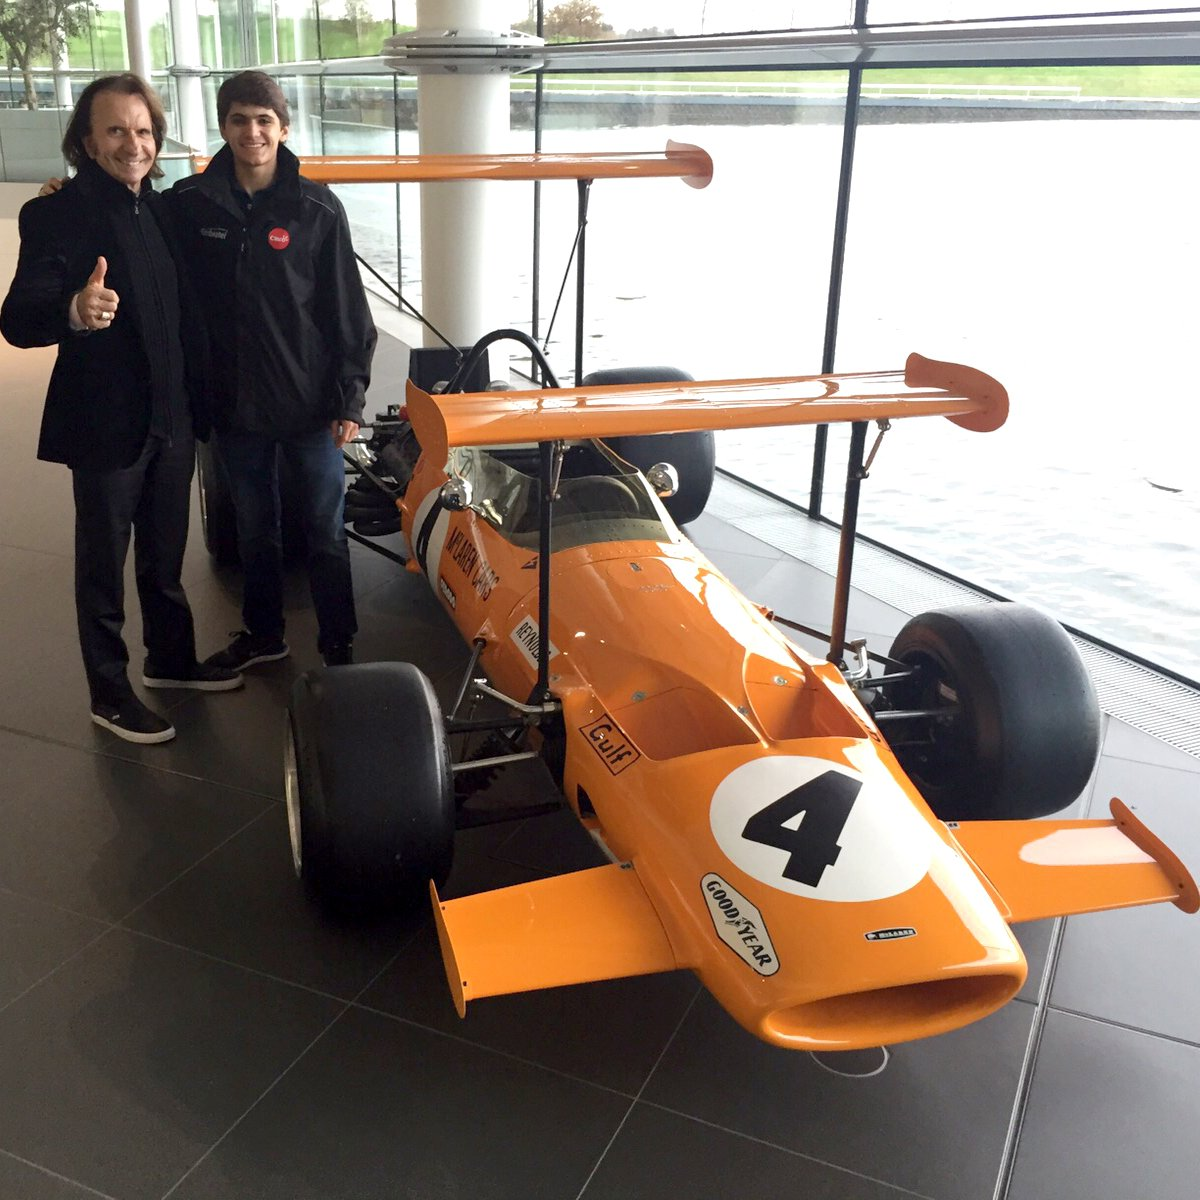 #FBF to my trip to the #McLaren centre with my grandfather. Here's the #F1 car driven by Bruce McLaren & Denny Hulme https://t.co/LJ4fFdnRx9